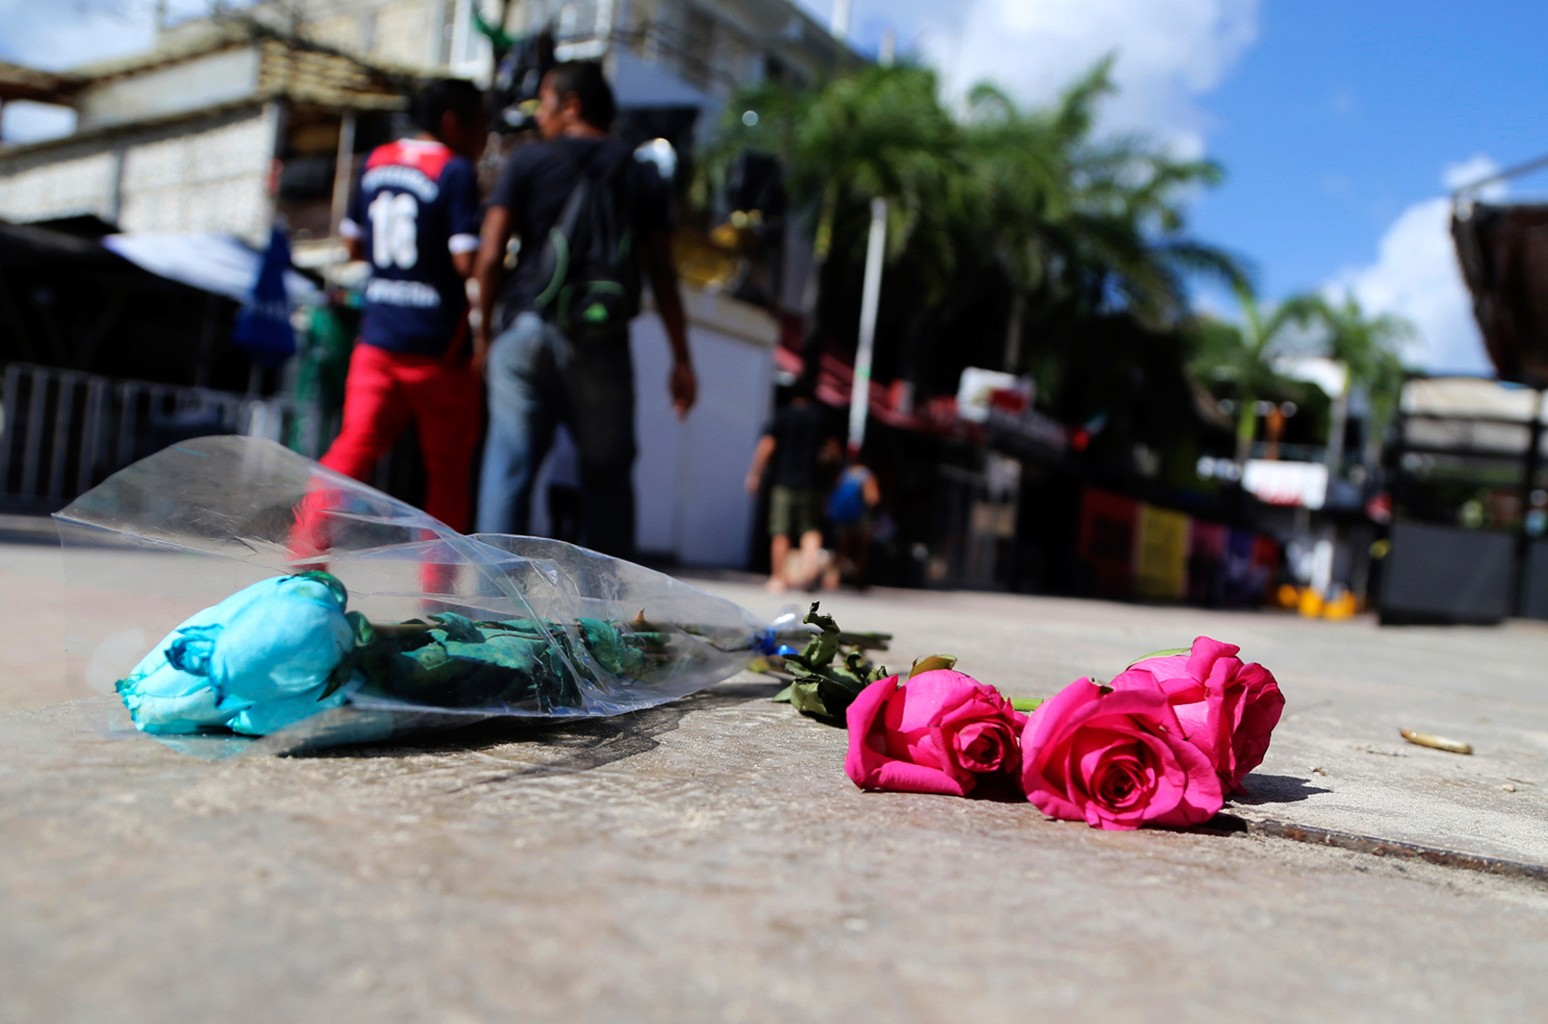 Roses lay outside the Blue Parrot nightclub after a shooting in Playa del Carmen, Mexico on Jan. 16, 2017.